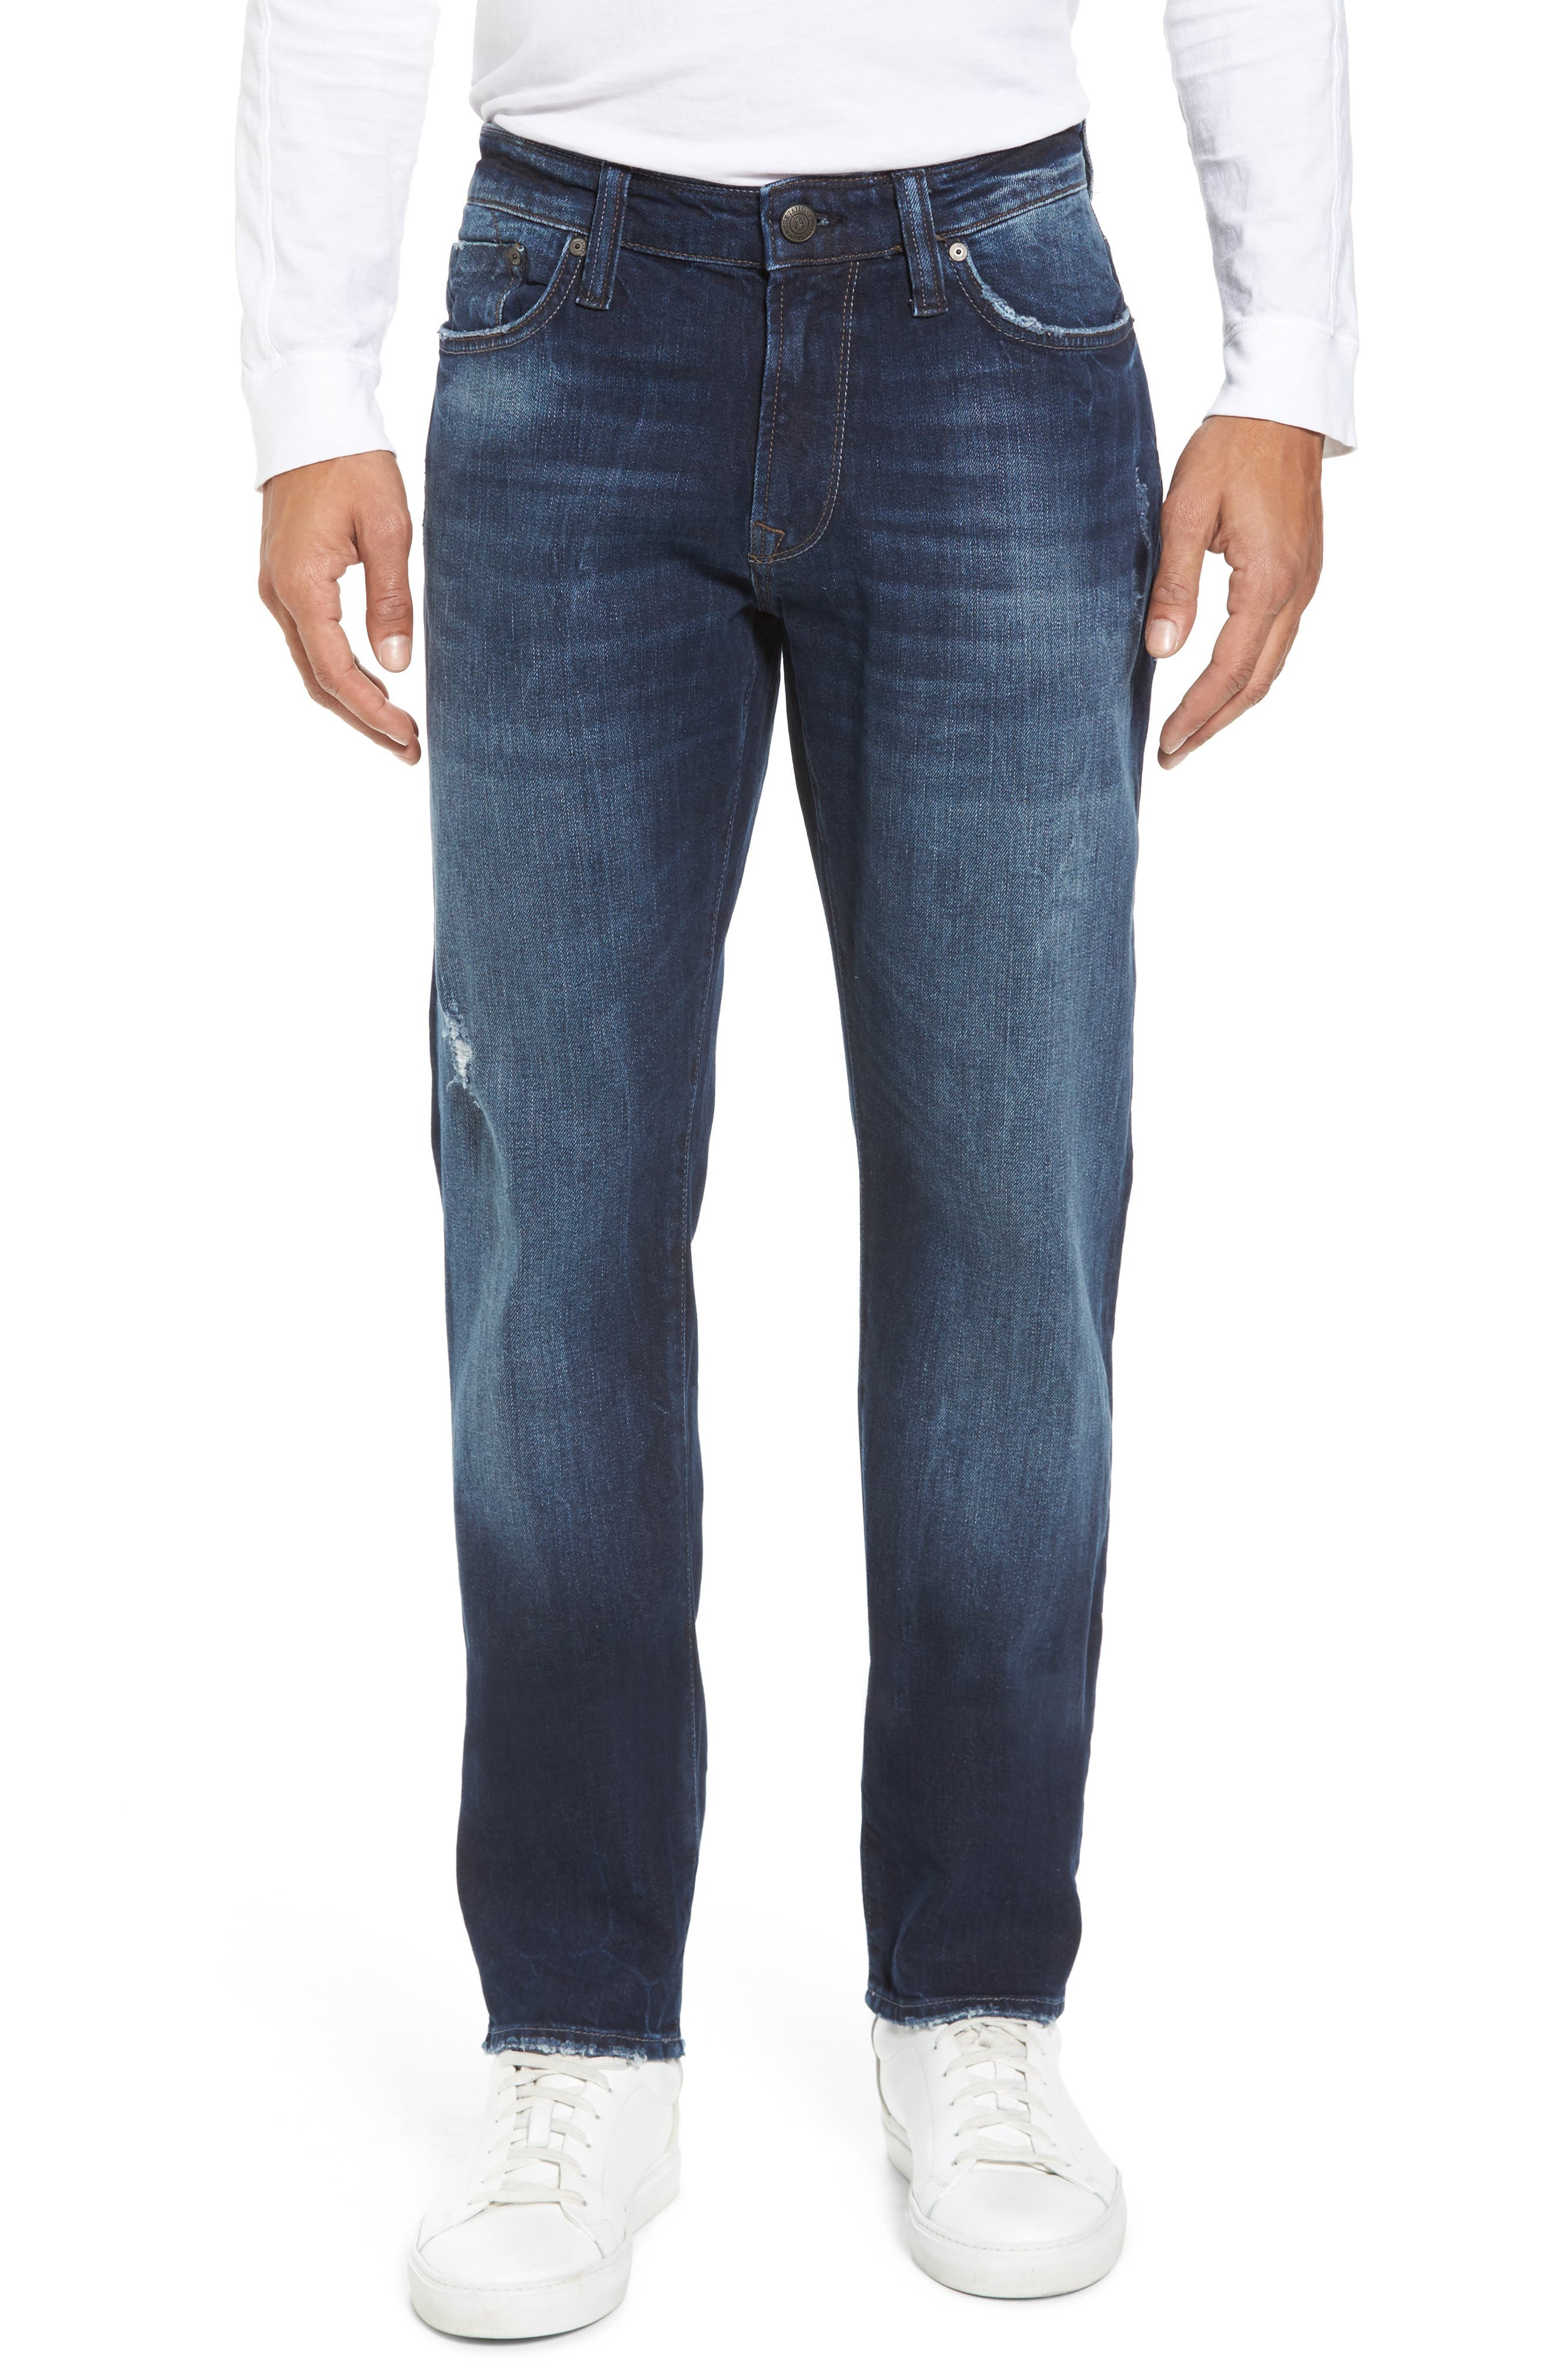 Marcus Slim Straight Leg Jeans,                         Main,                         color, 401